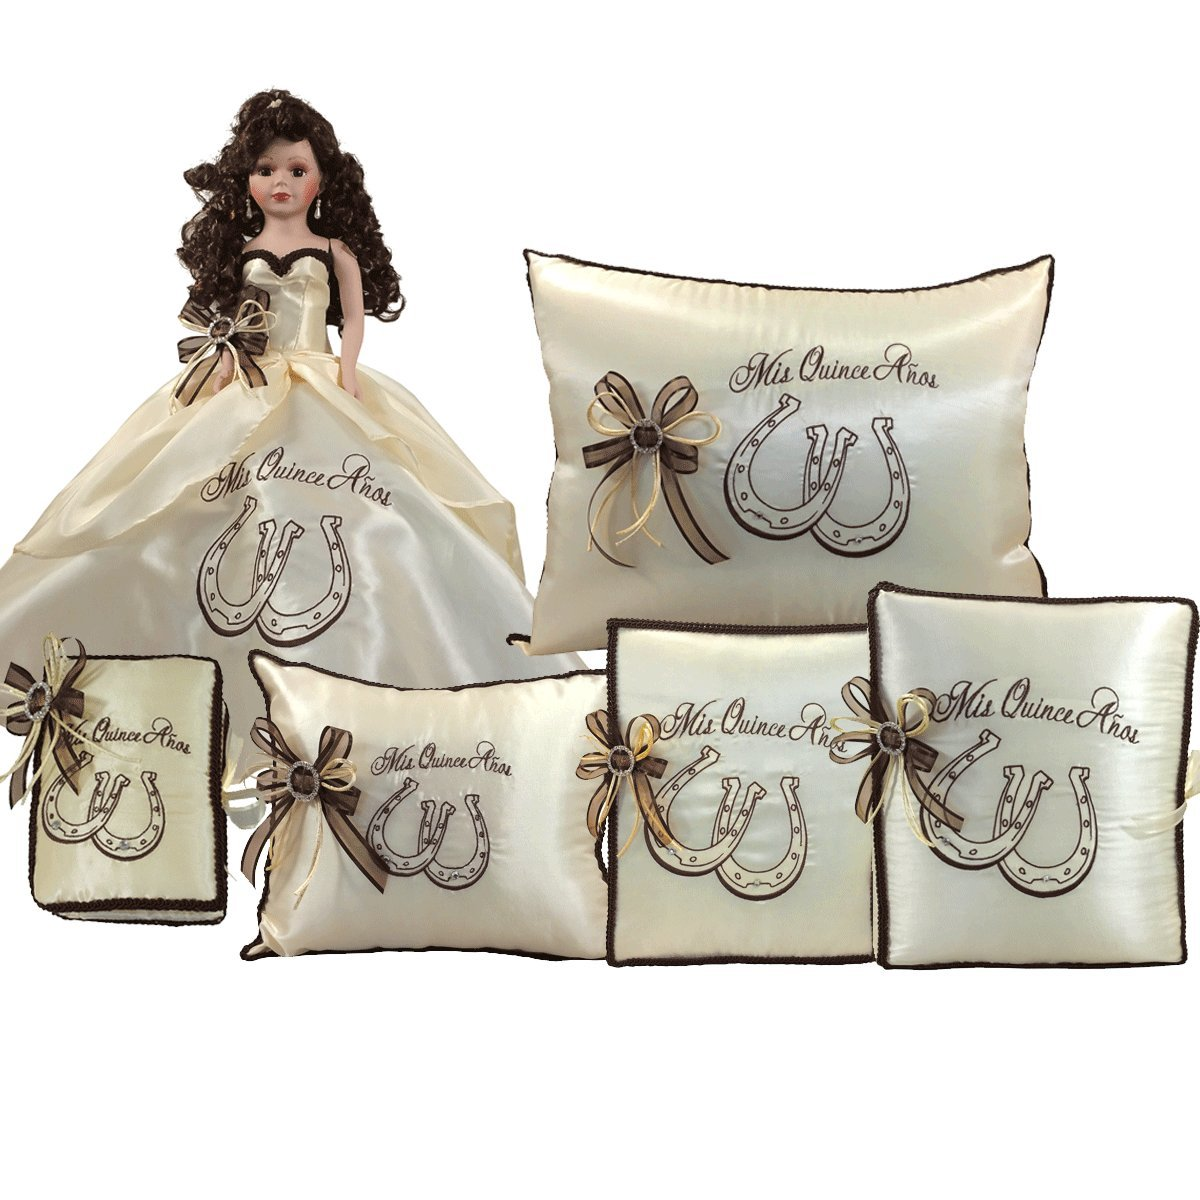 Quinceanera Complete Set Doll Guest Book Kneeling Tiara Pillow Photo Album Bible Q1057 (Basic set + English bible)